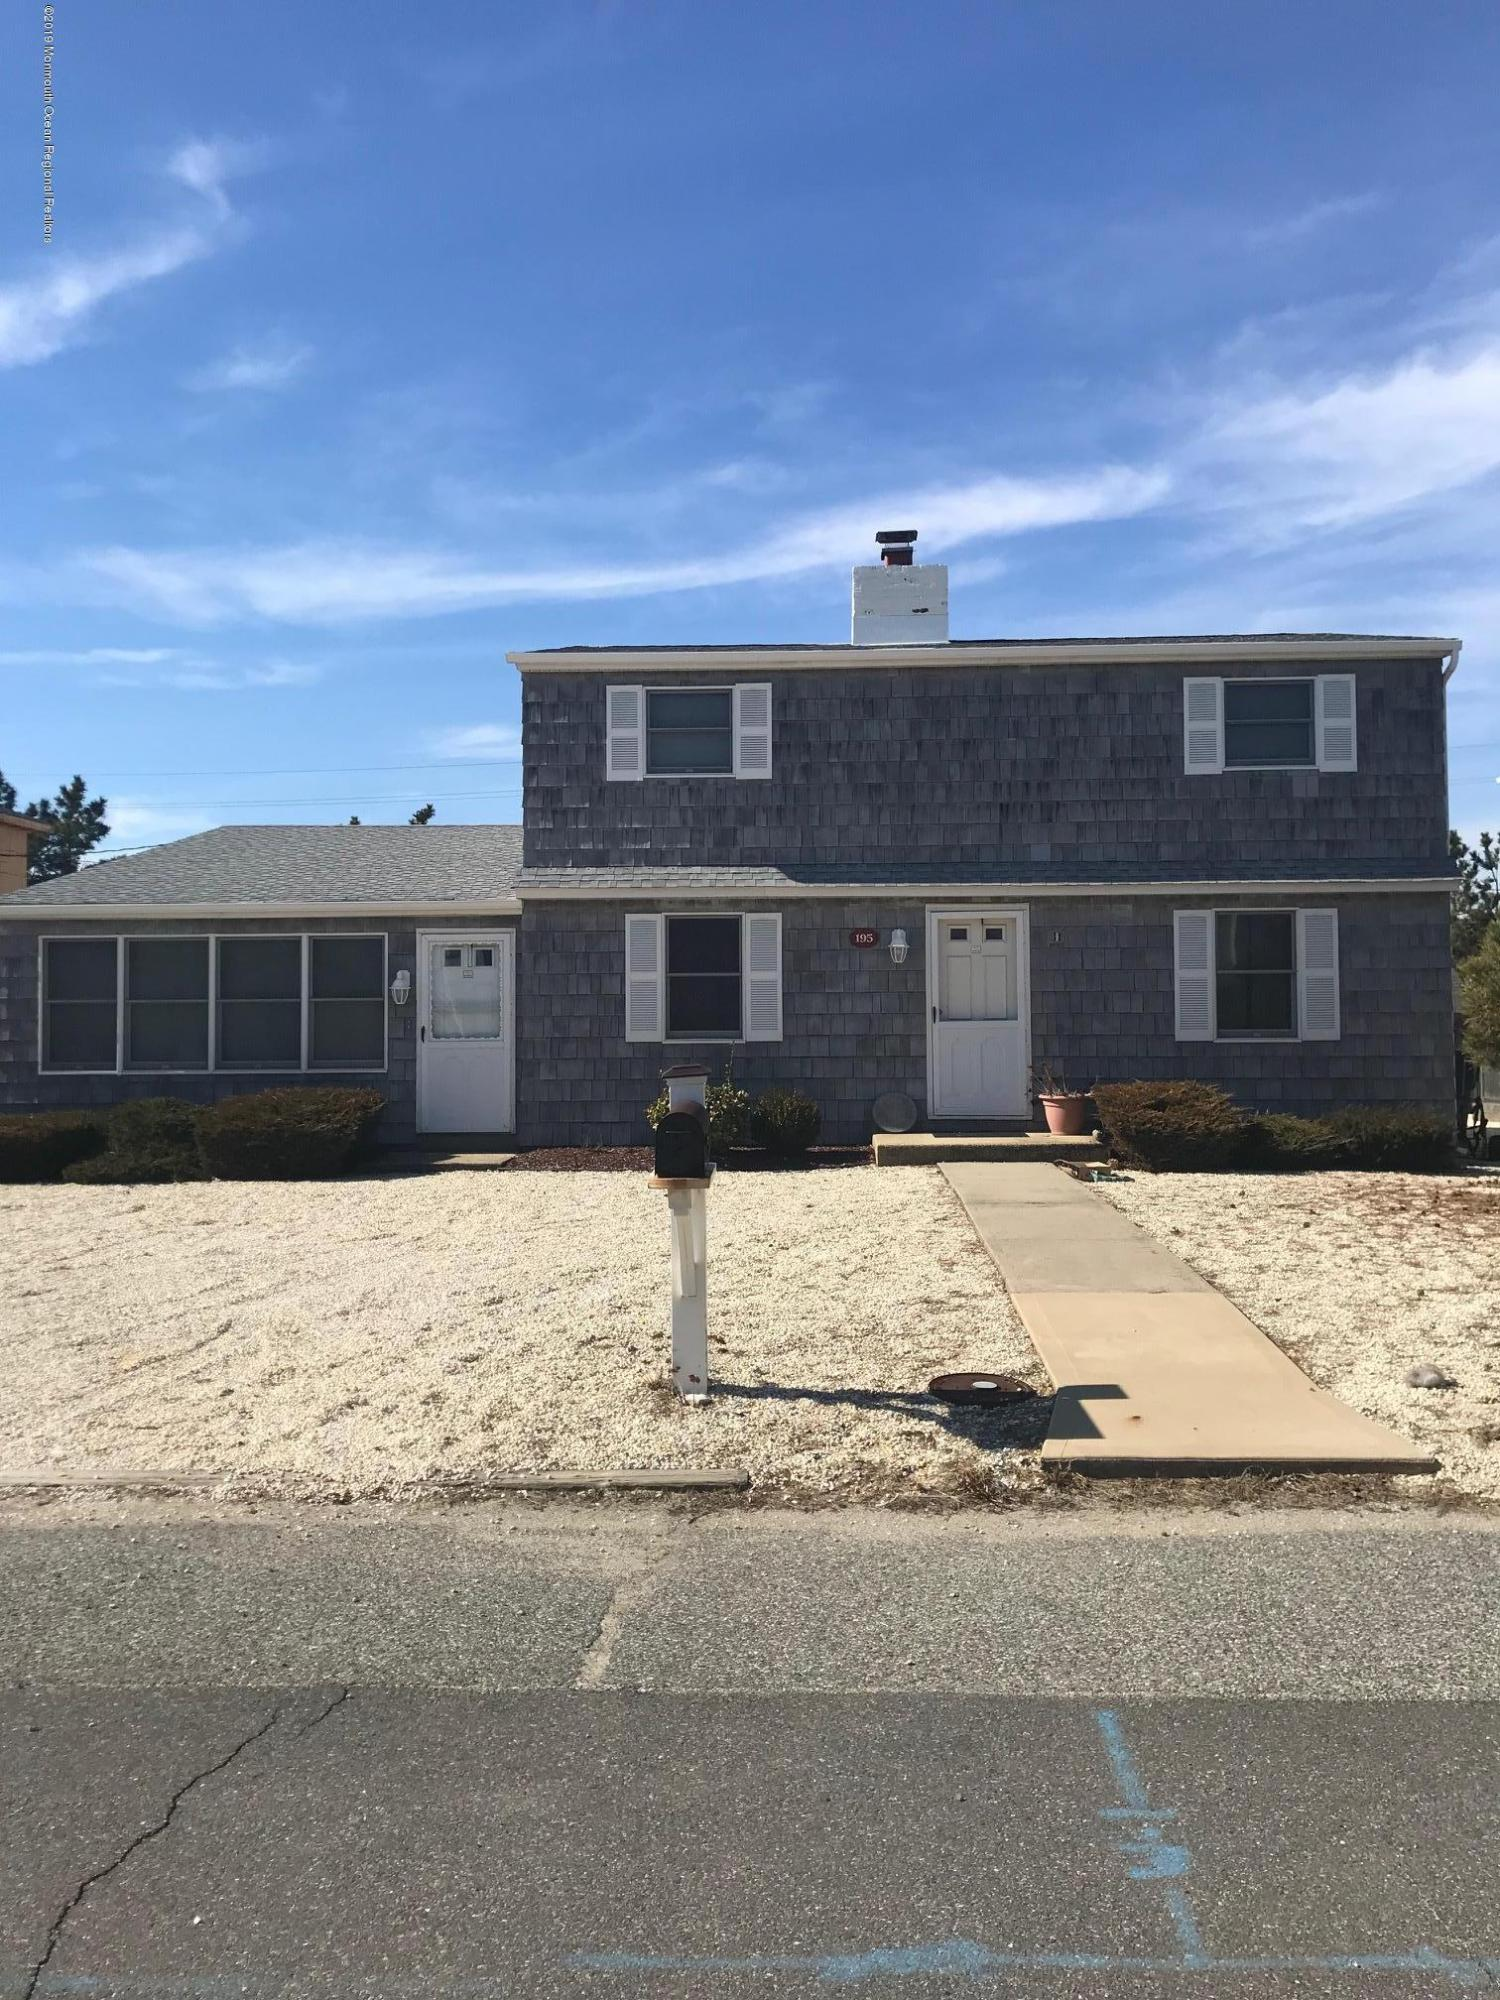 Photo of 195 Dune Avenue, Mantoloking, NJ 08738